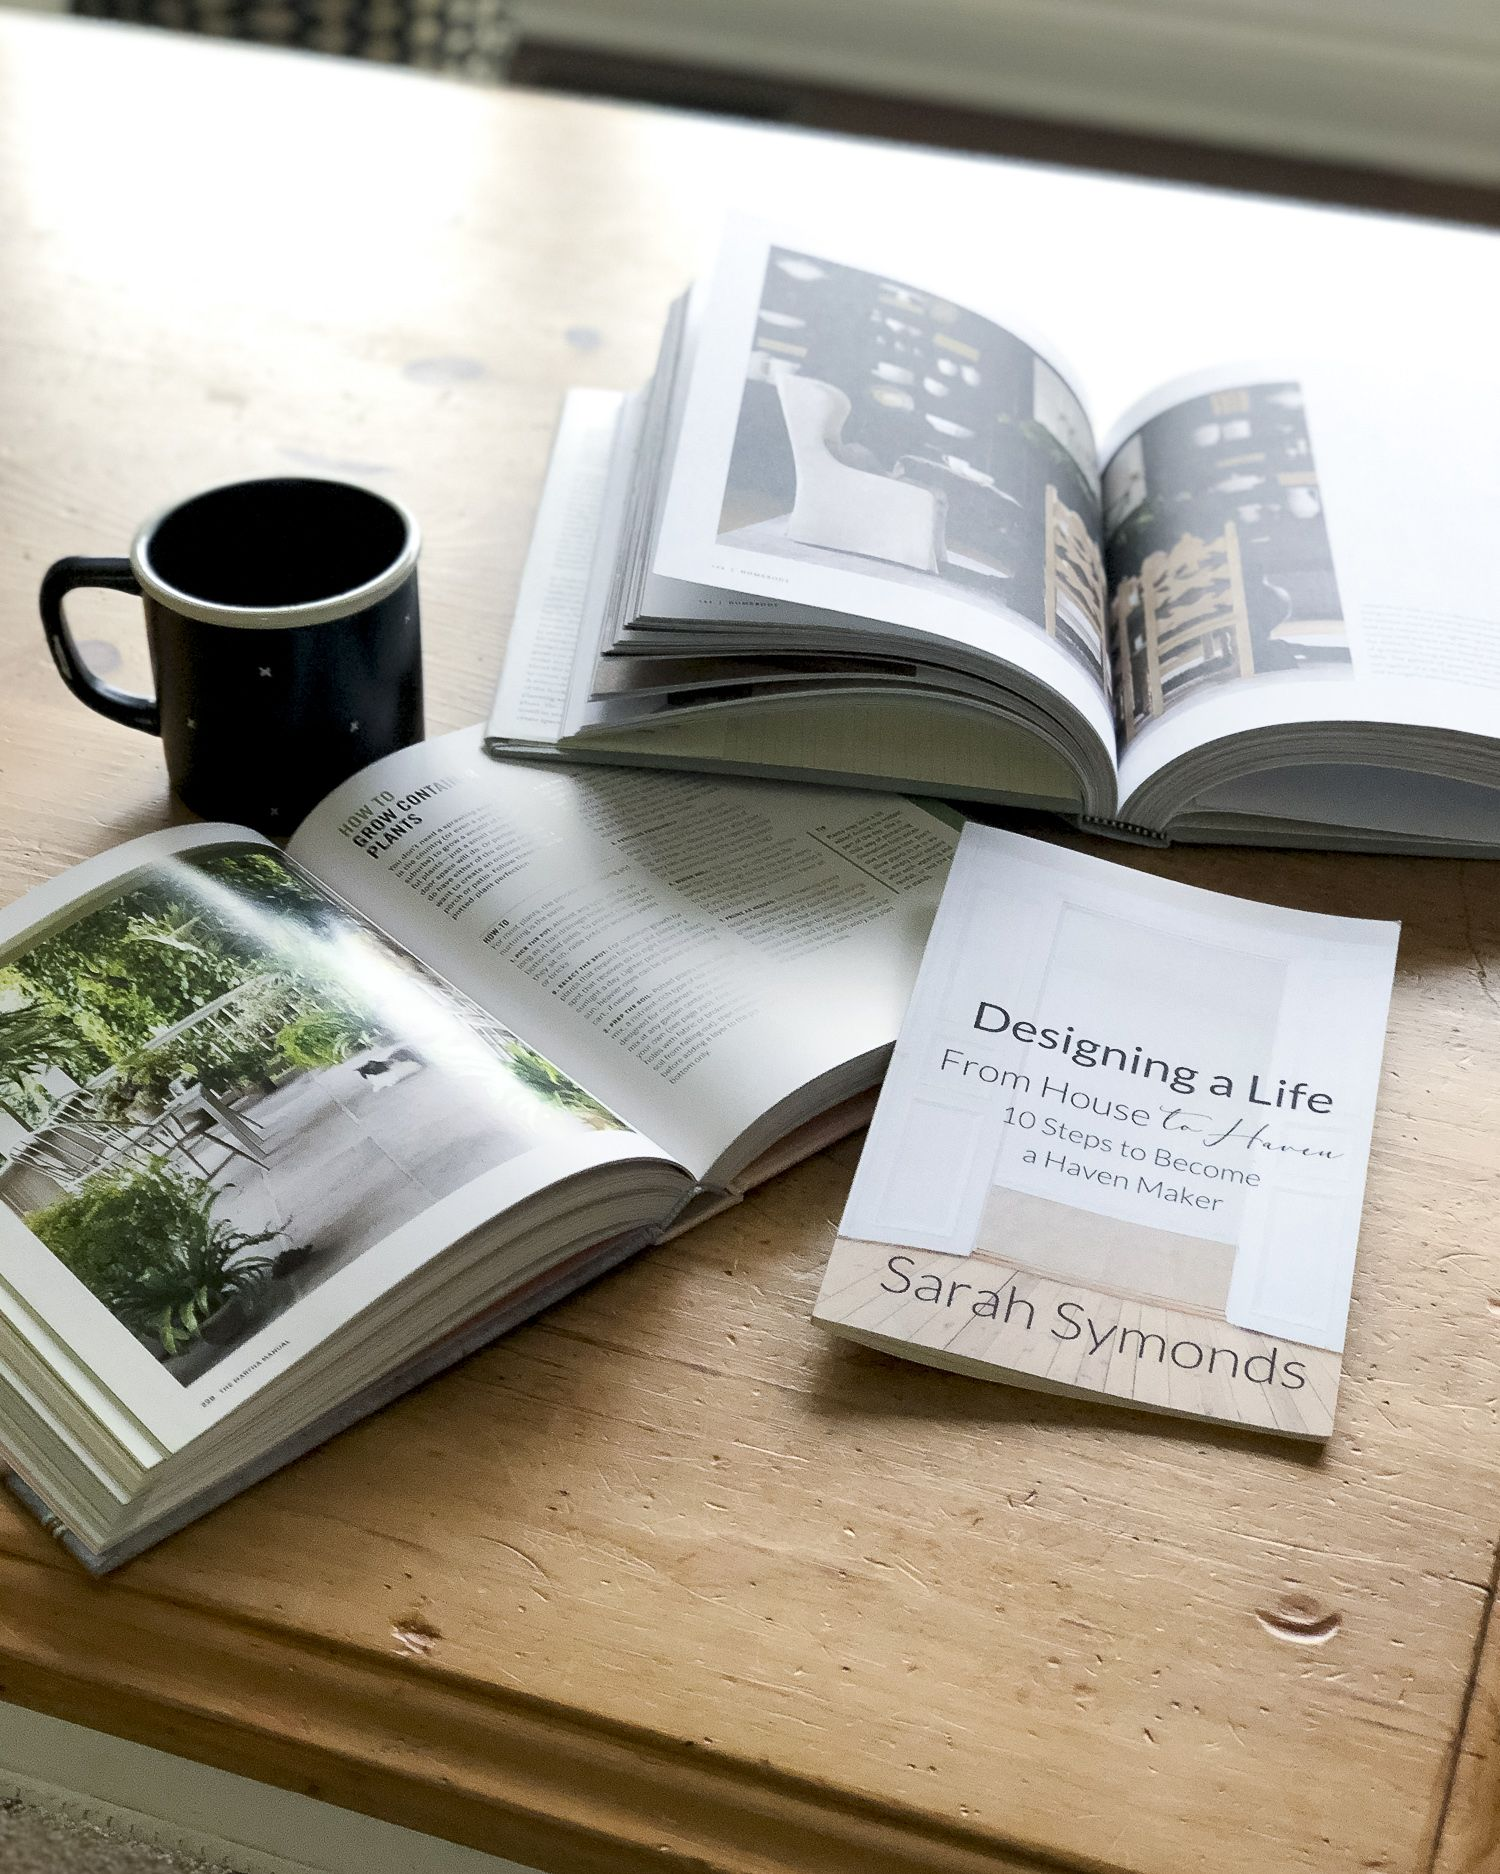 Are You Looking For Beginner Interior Design Books Today I M Reviewing 3 To Showcase How Each Can Help In Your Home Journey